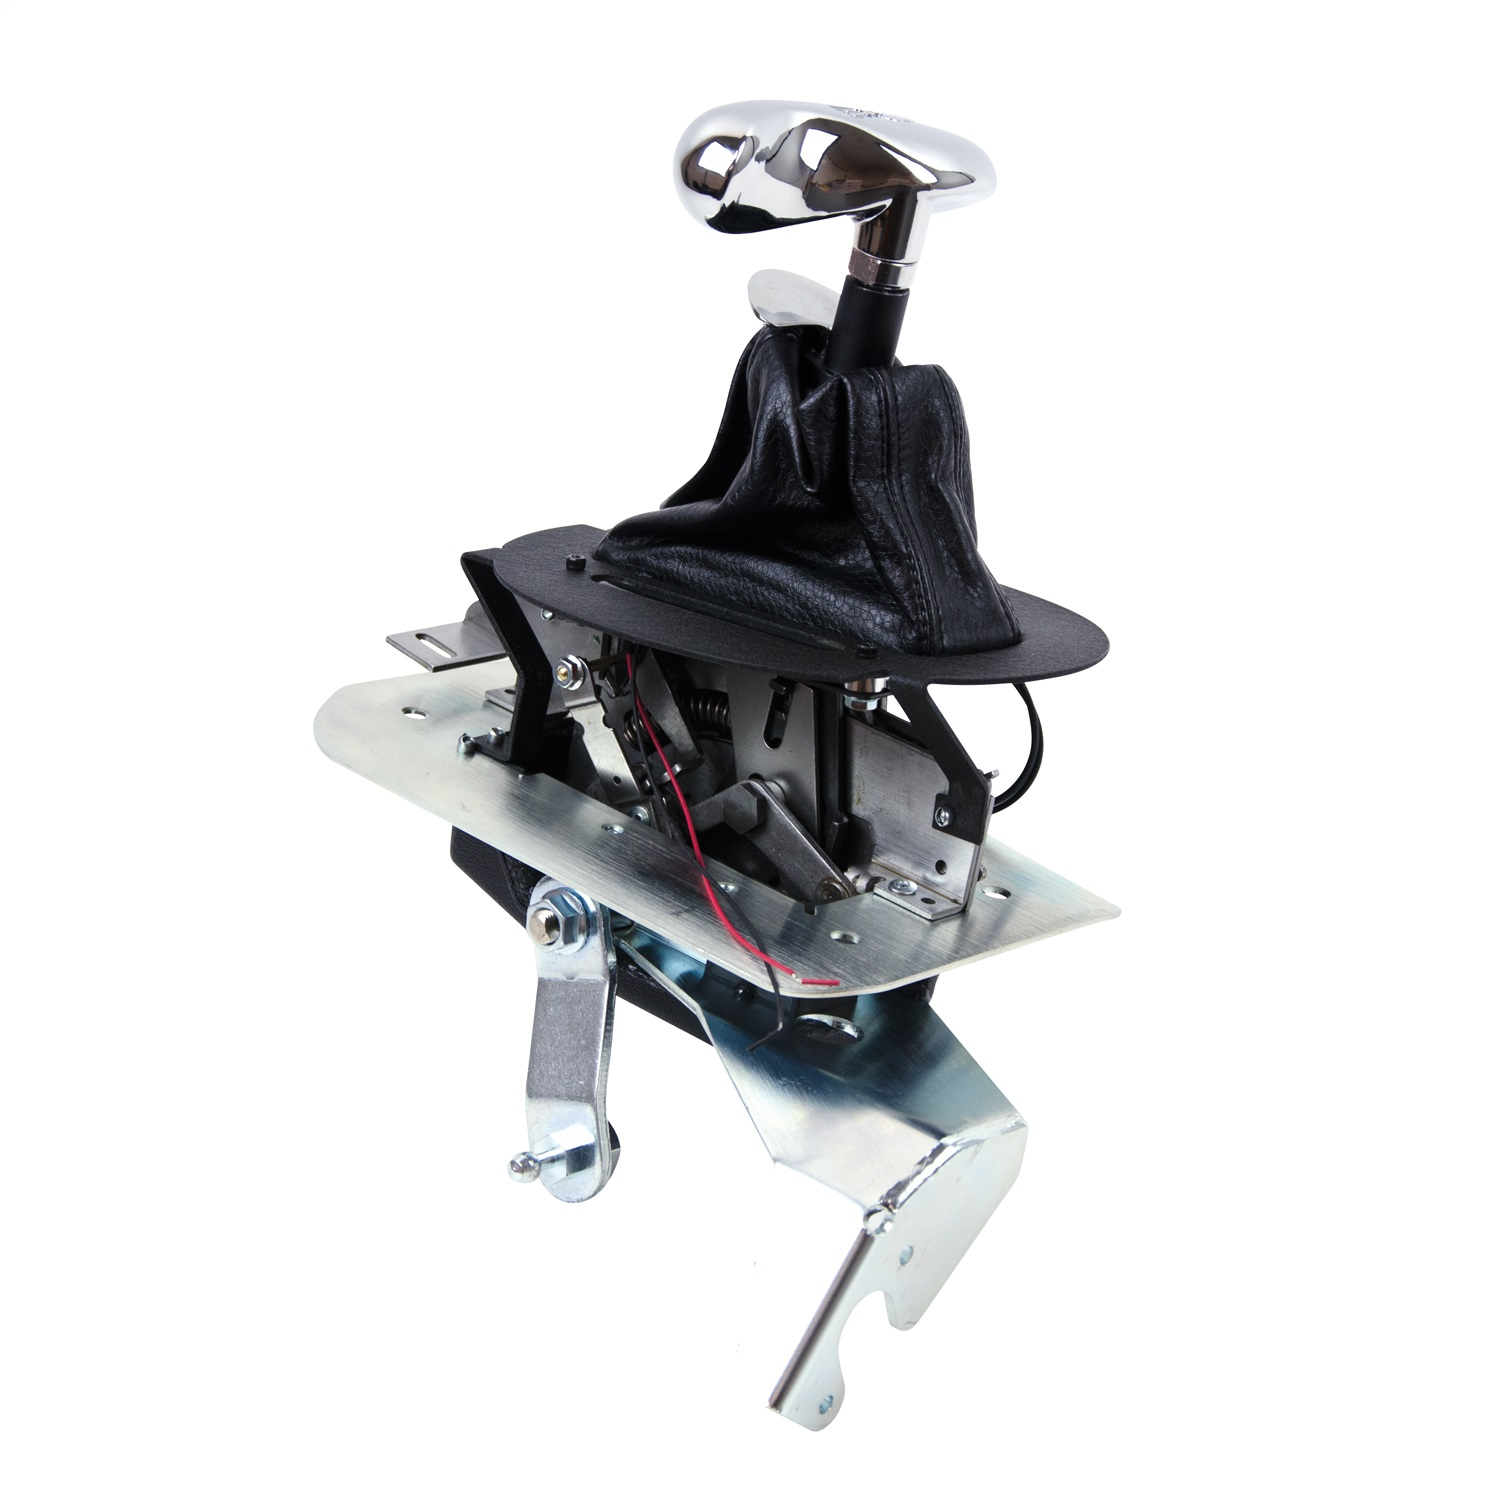 B&M 81001 Console Hammer Automatic Transmission Shifter Assembly Fits Mustang